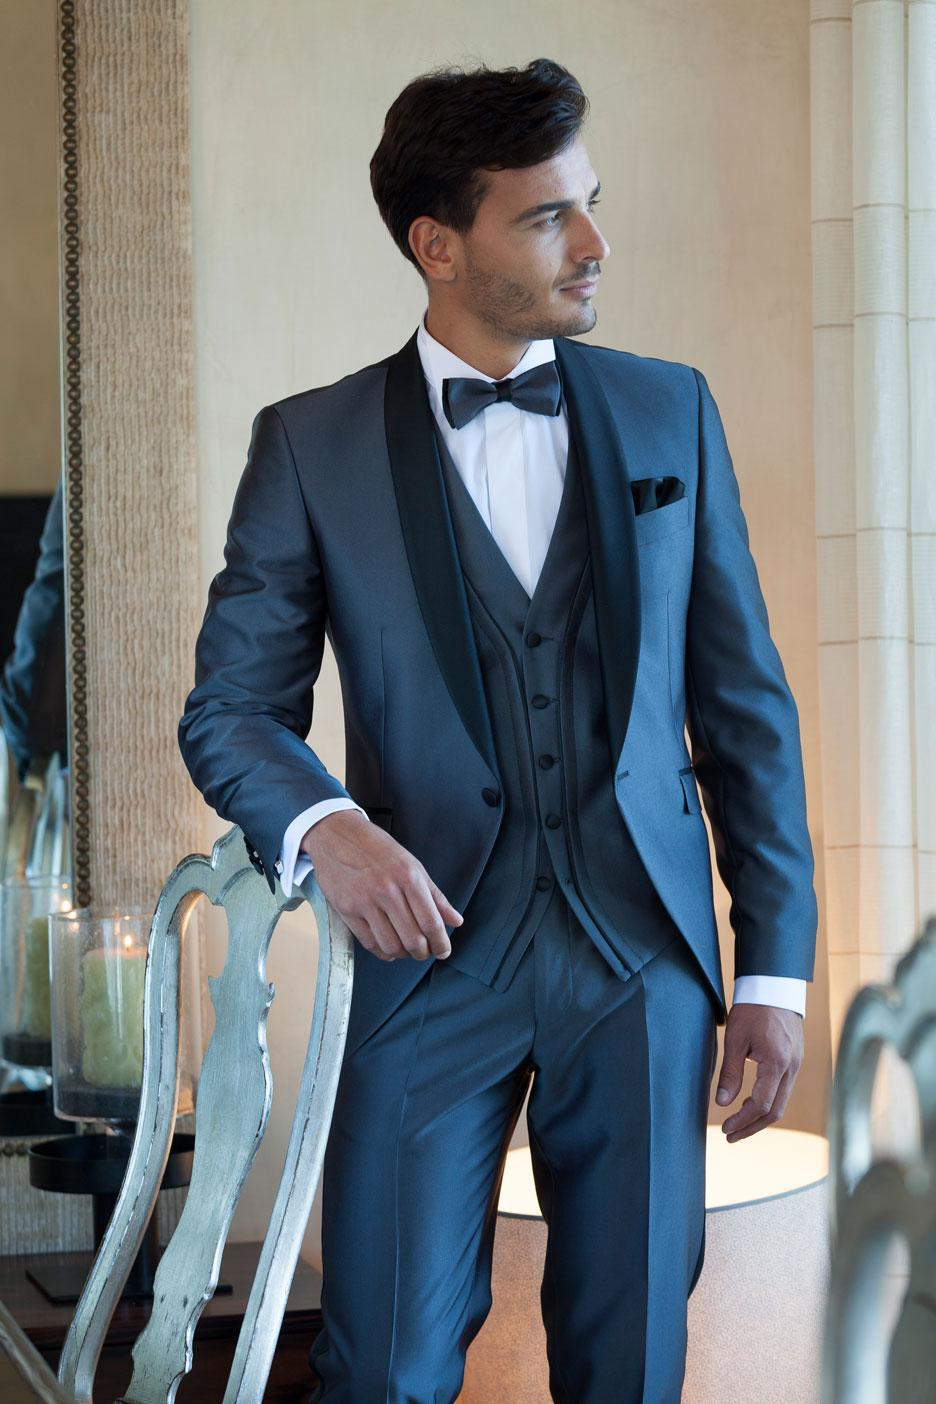 Franc Milton suits are an iconic representation of men's fashion and the classic American look. The tailor is located in Los Angeles, and their appointment fittings allow .